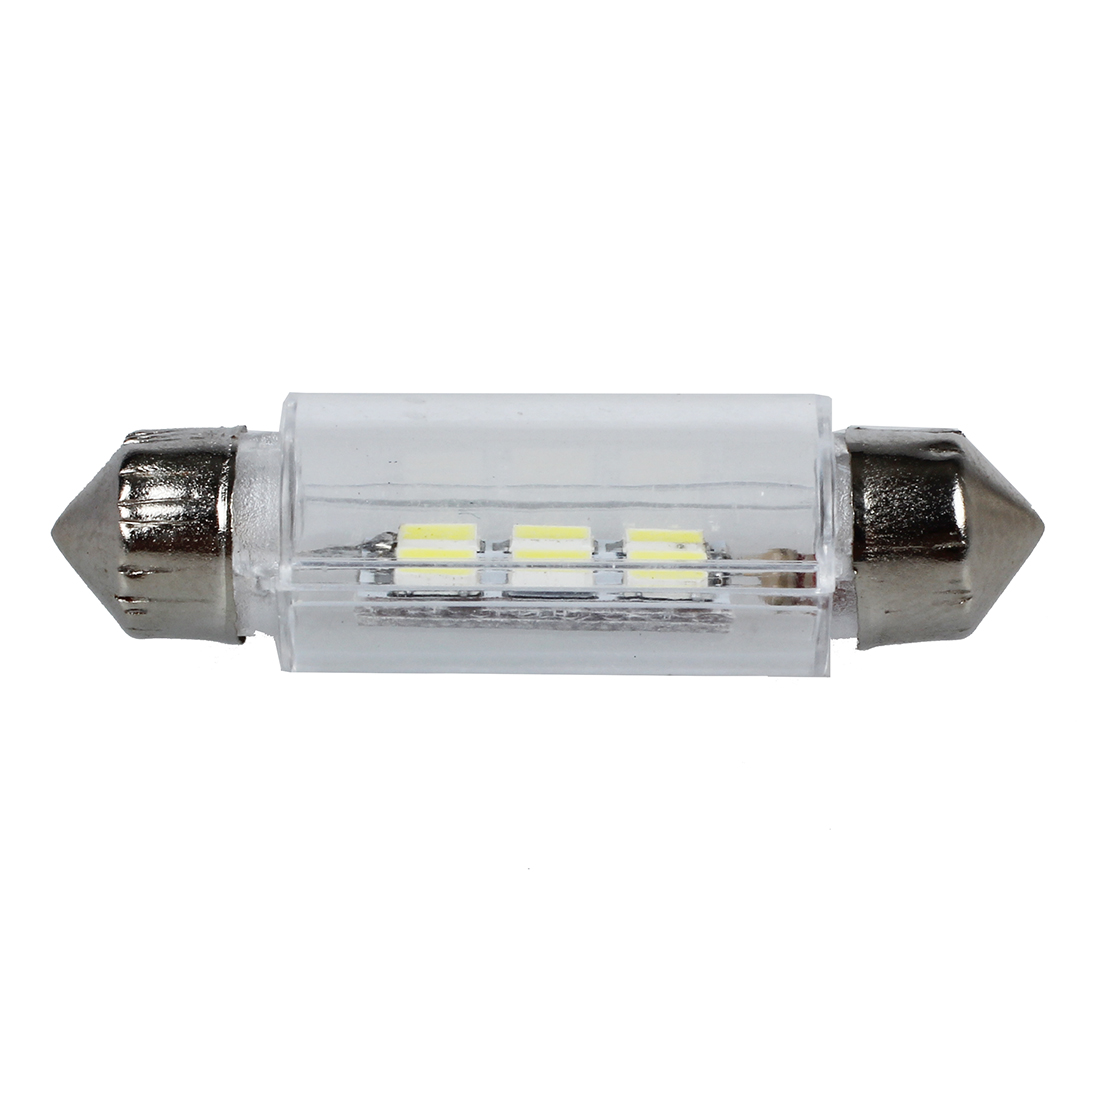 New practical 38mm white 6 smd led car interior dome light lamp bulb led car interior dome light lamp bulb dc 12v new low power consumption and high brightness easy to install compatible with 40mm 44mm 211 211 2 arubaitofo Gallery